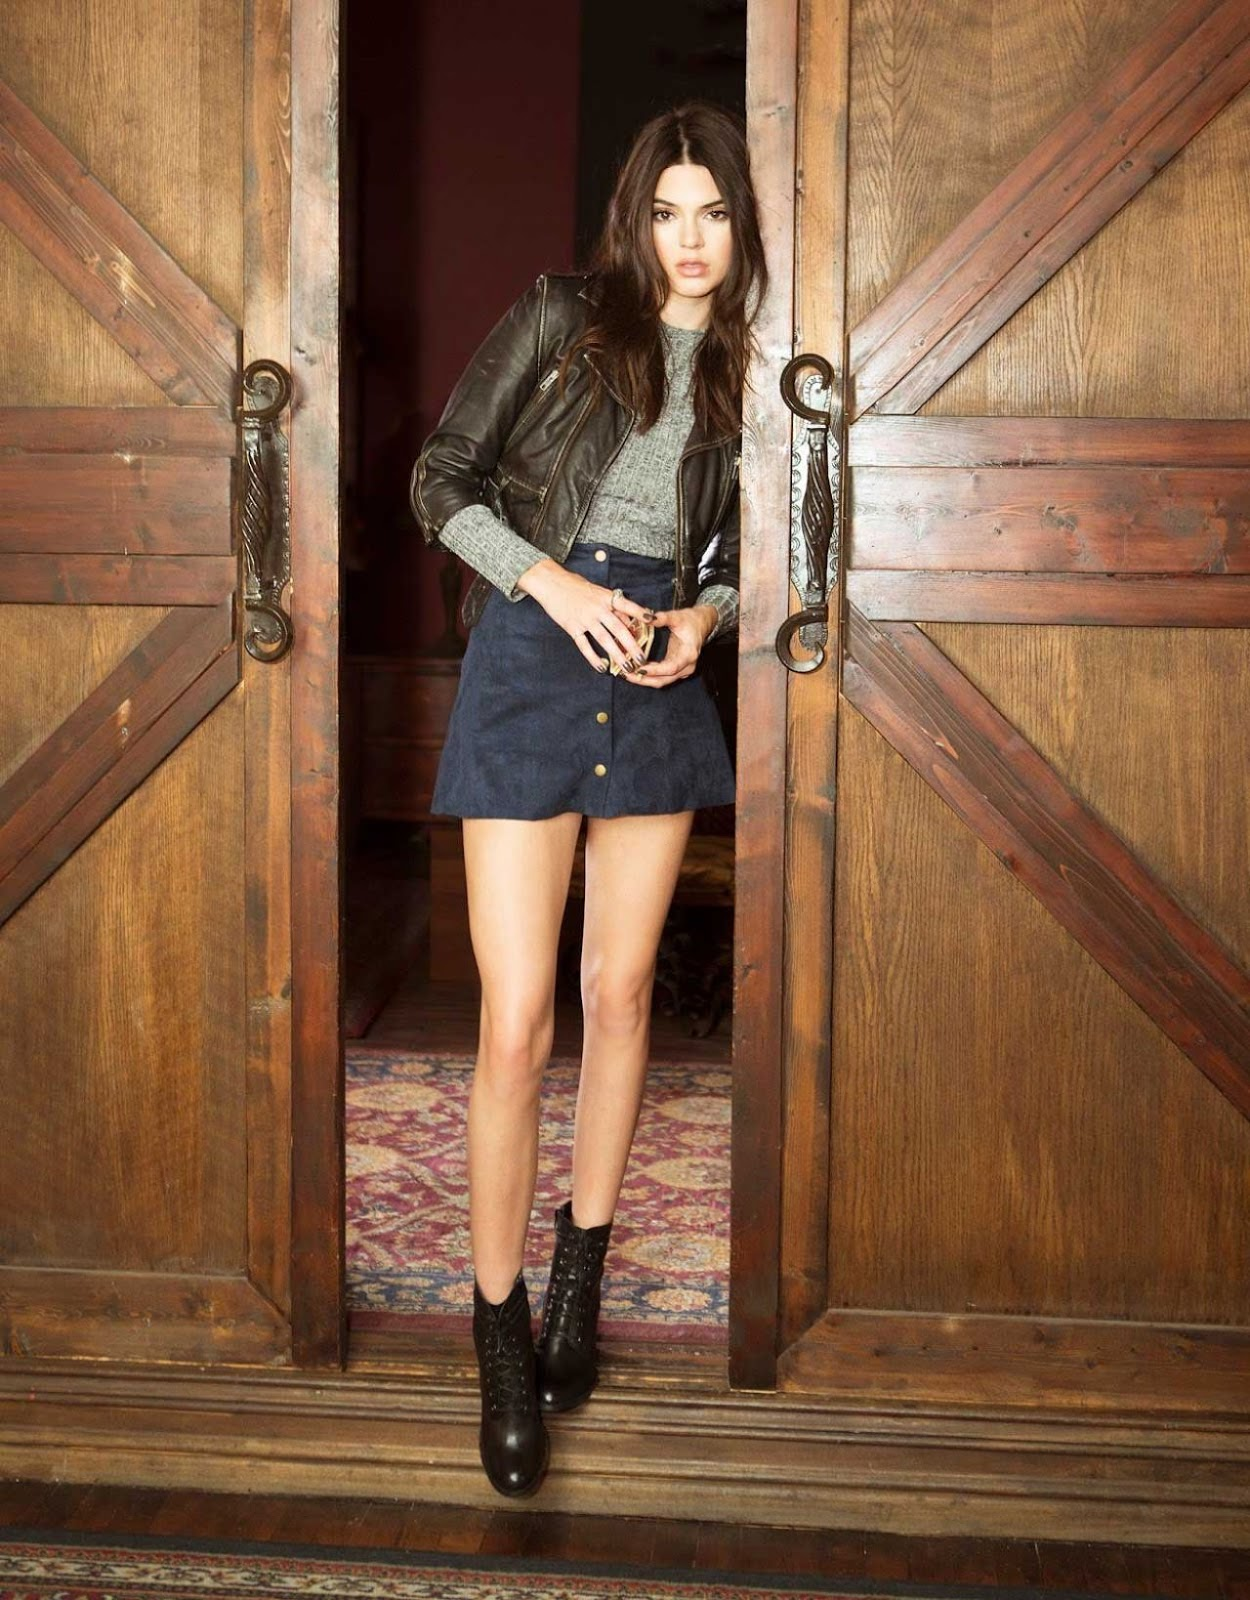 PacSun 'Las Rebeldes Fall 2015 Lookbook featuring Kendall and Kylie Jenner